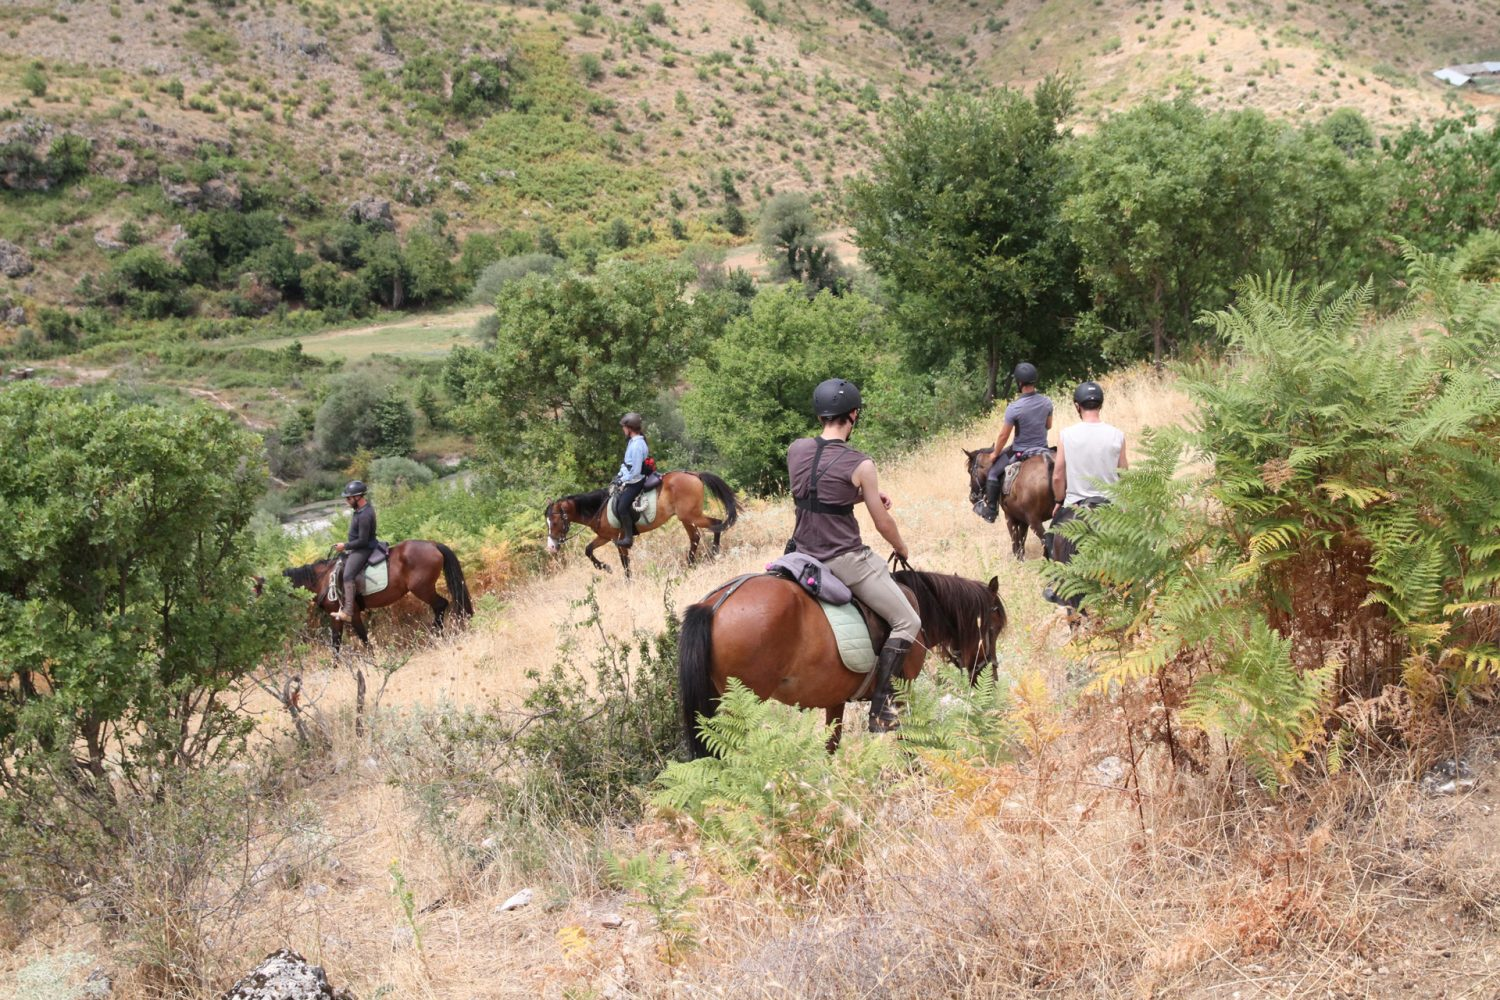 Caravan Horse Riding Albania, placed in Southern Albania, Gjirokastra Historical Town - Horse Trail Albania, Horse Riding Trails in Albania